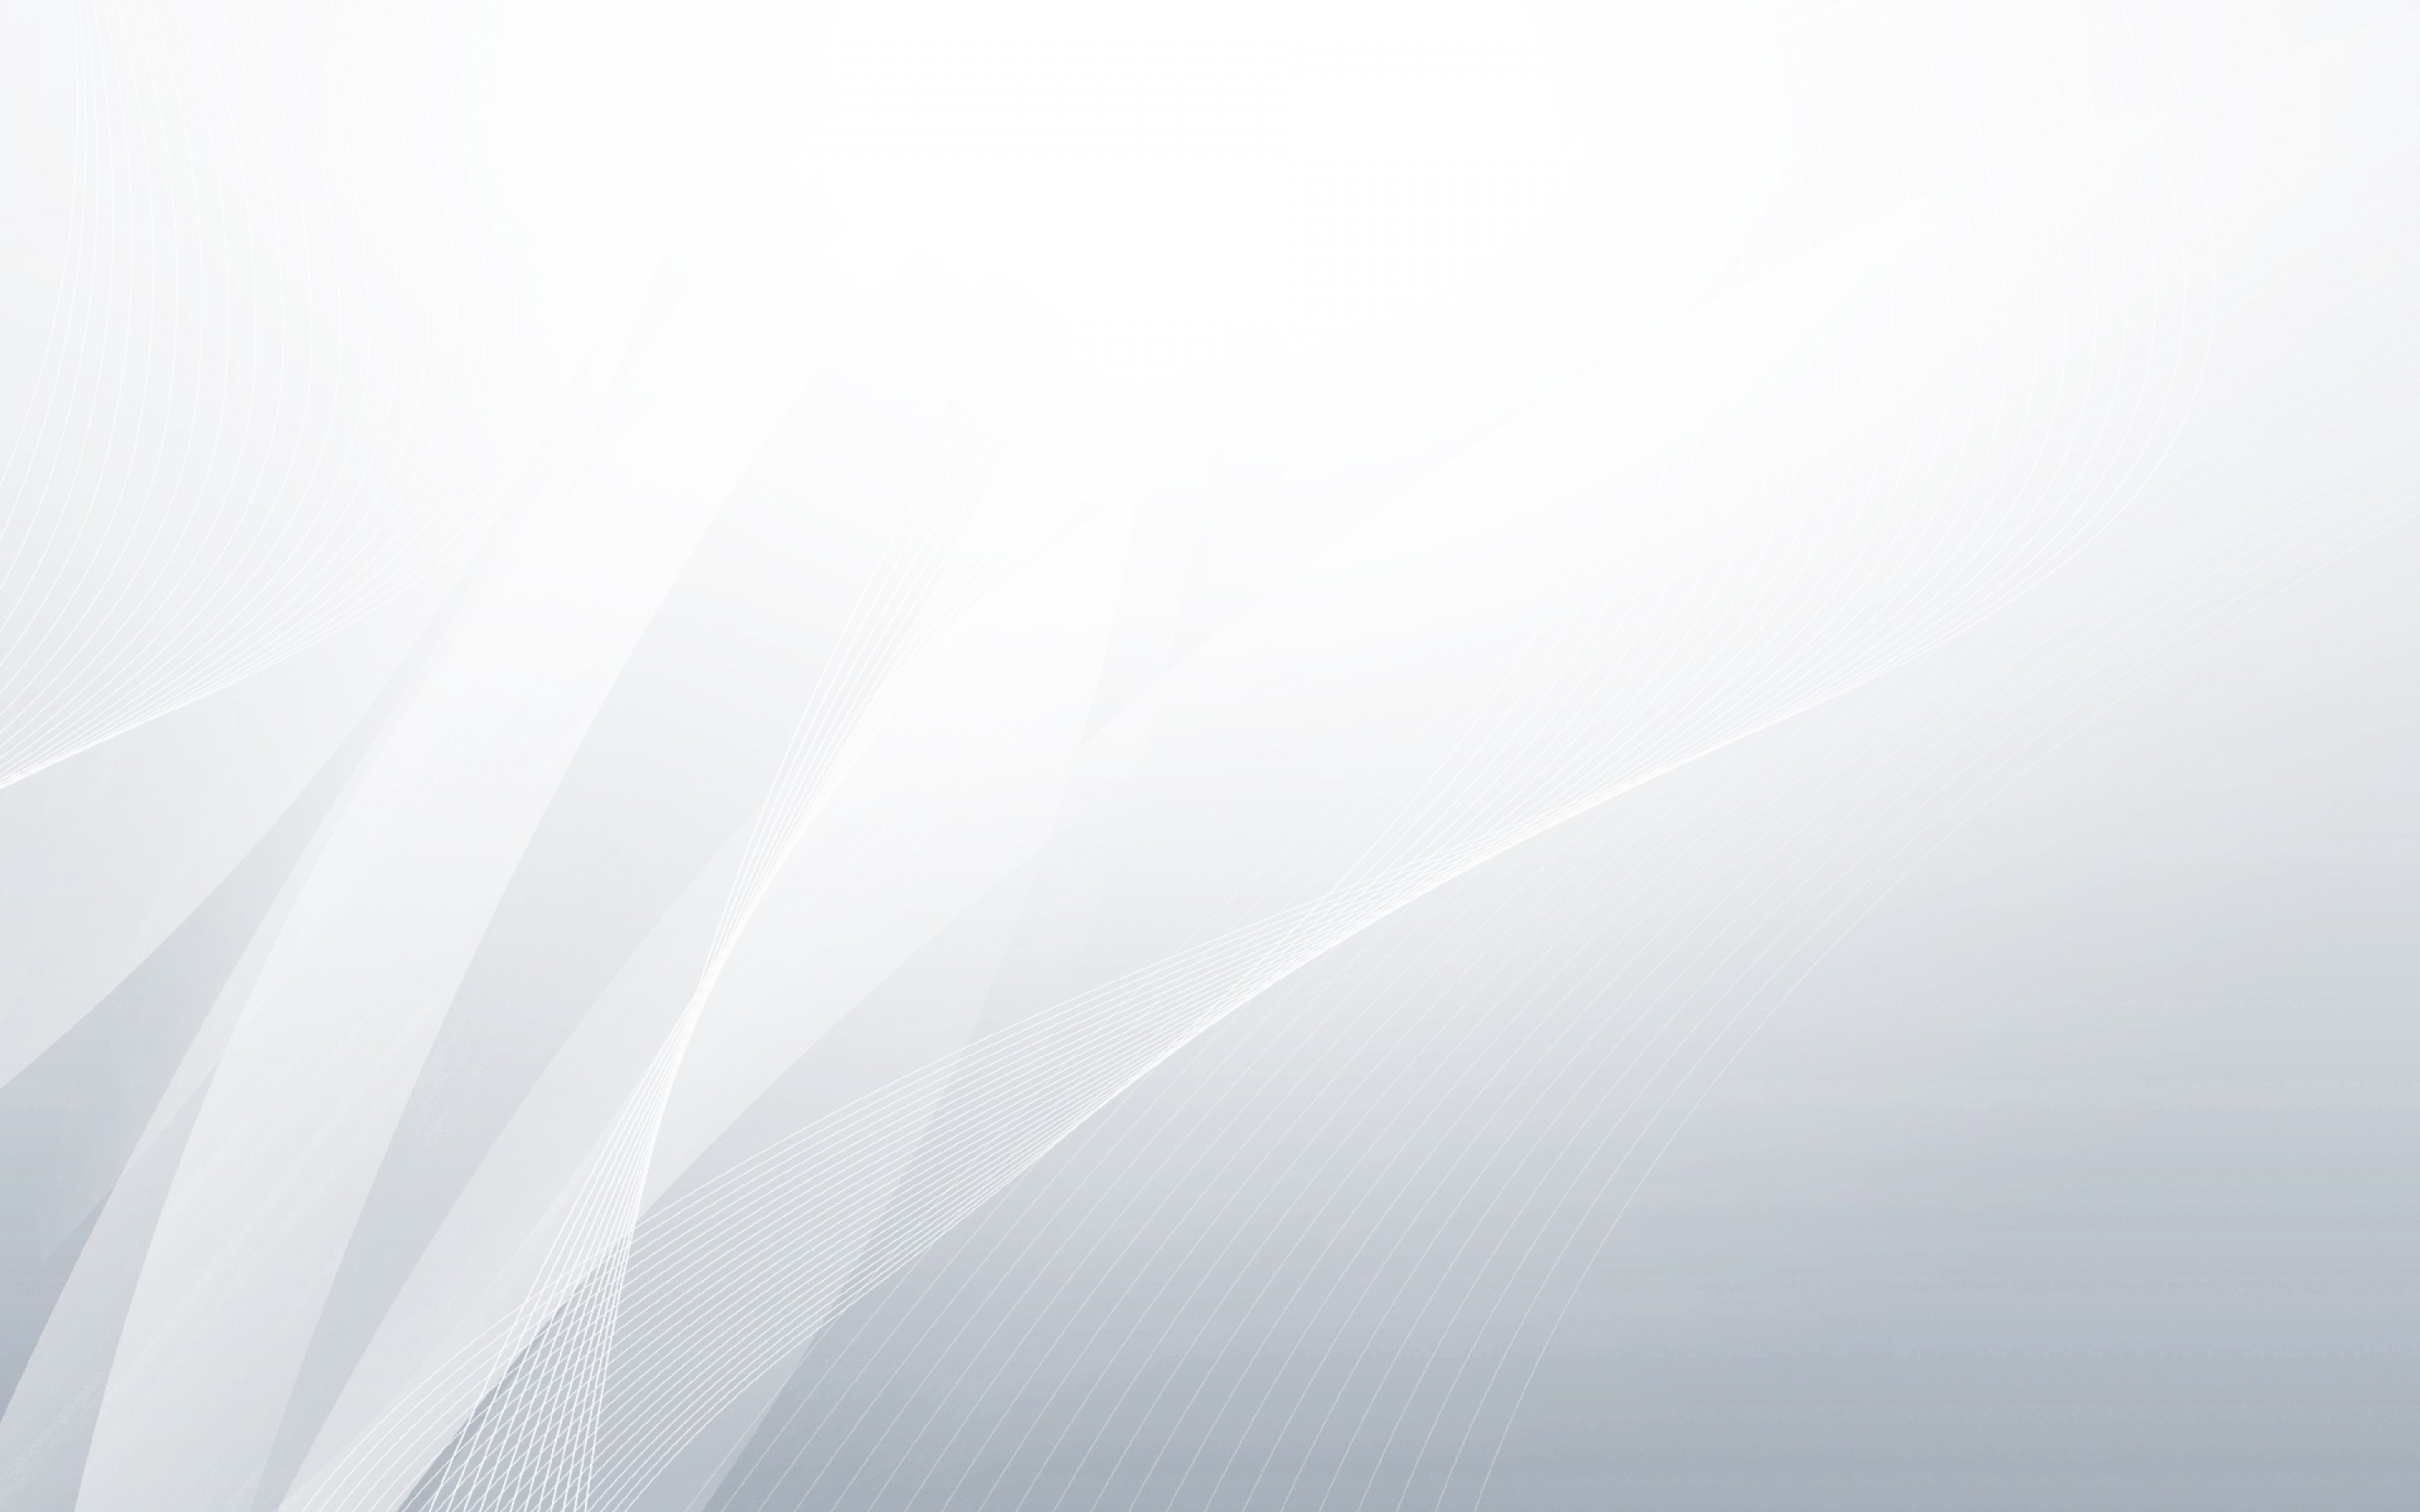 white-curves-on-grey-background-bright-abstract-wallpaper